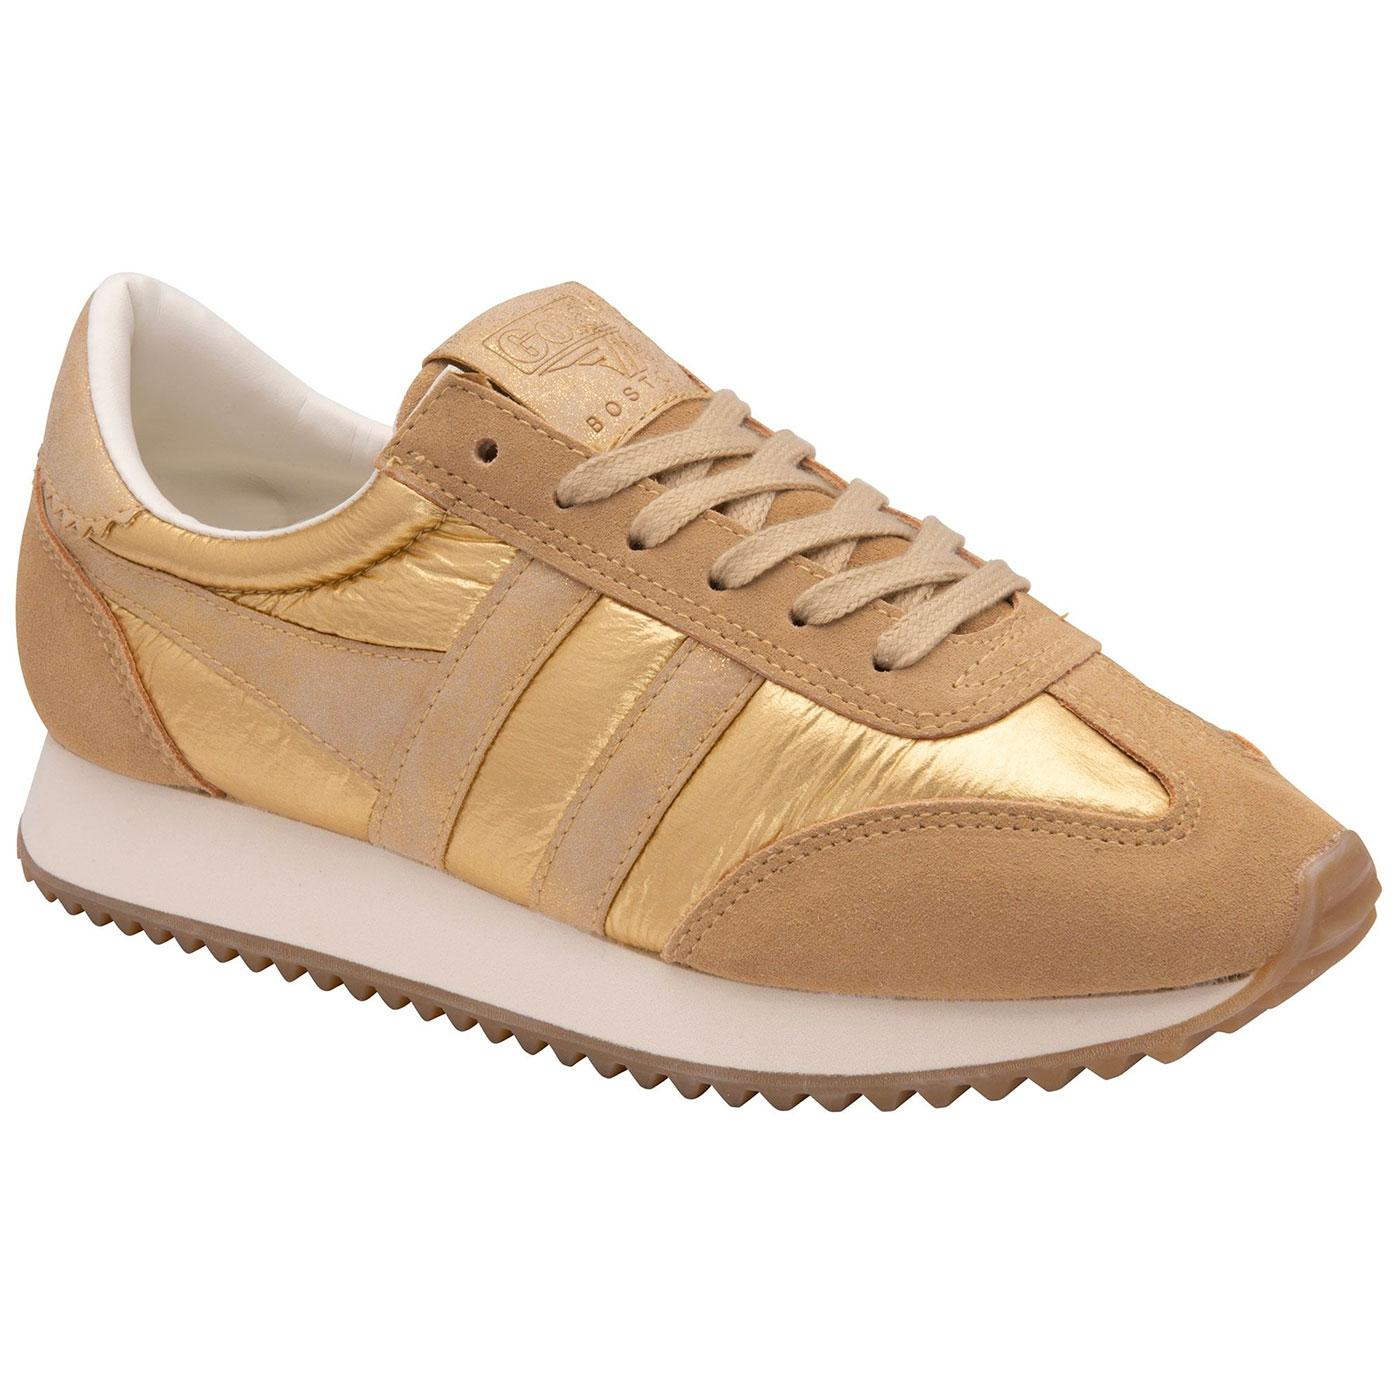 Boston 78 GOLA Women's Retro 70s Trainers (Gold)